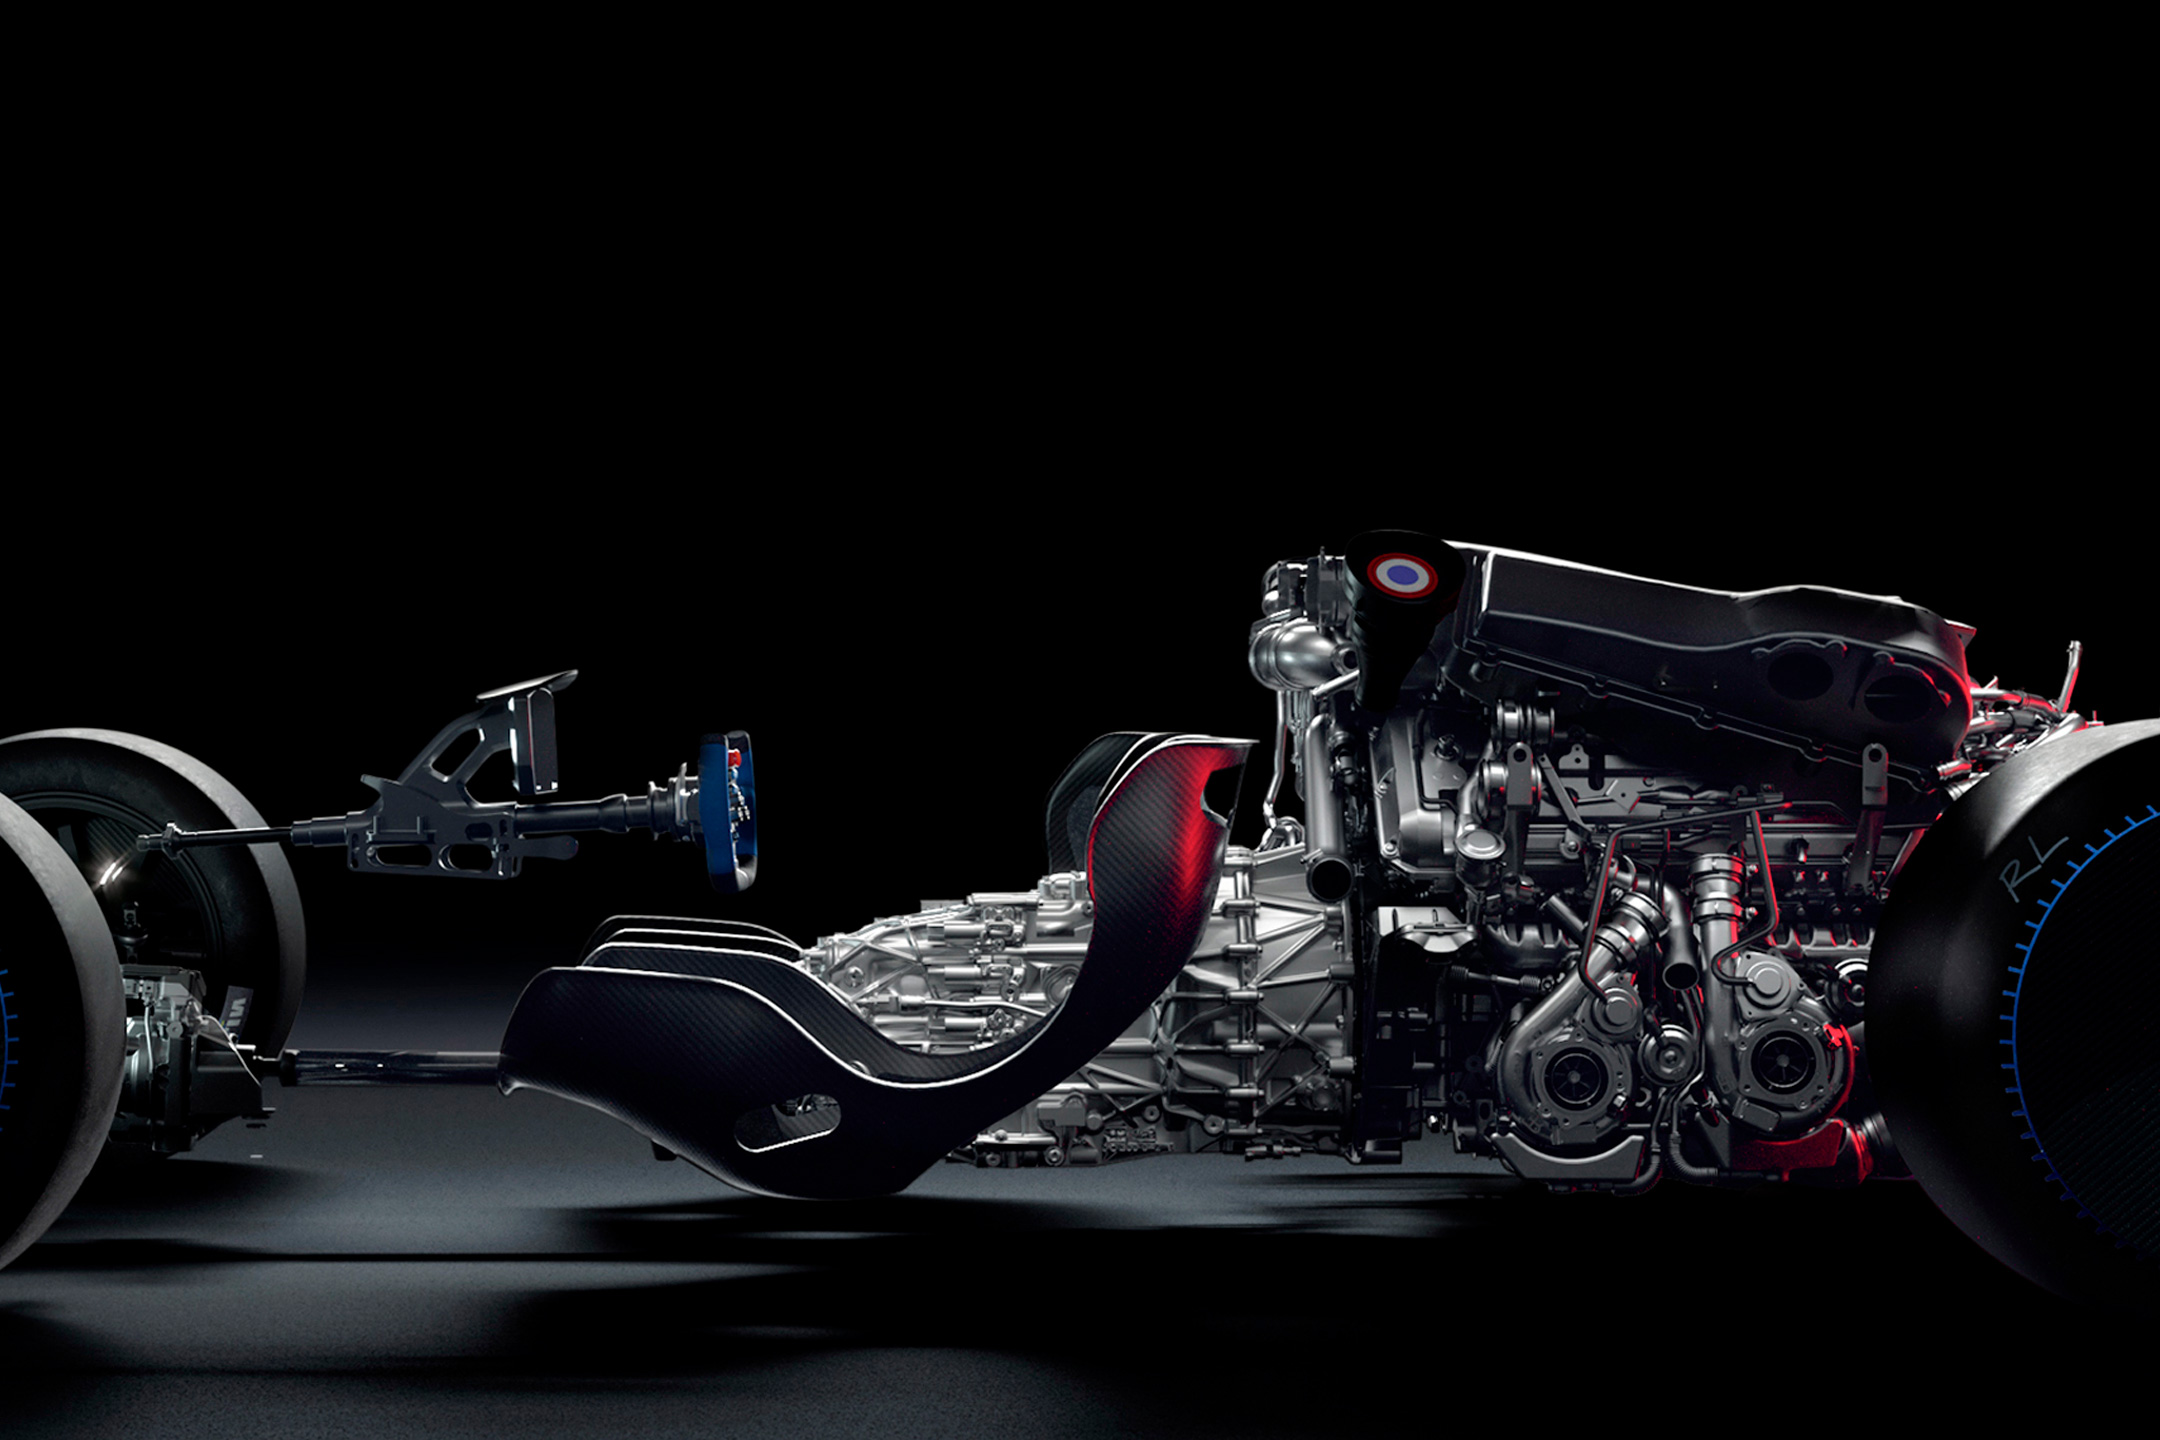 Bugatti Bolide - 2020 - engine / moteur - under the hood - W16 8.0L - quad turbochargers exhaust